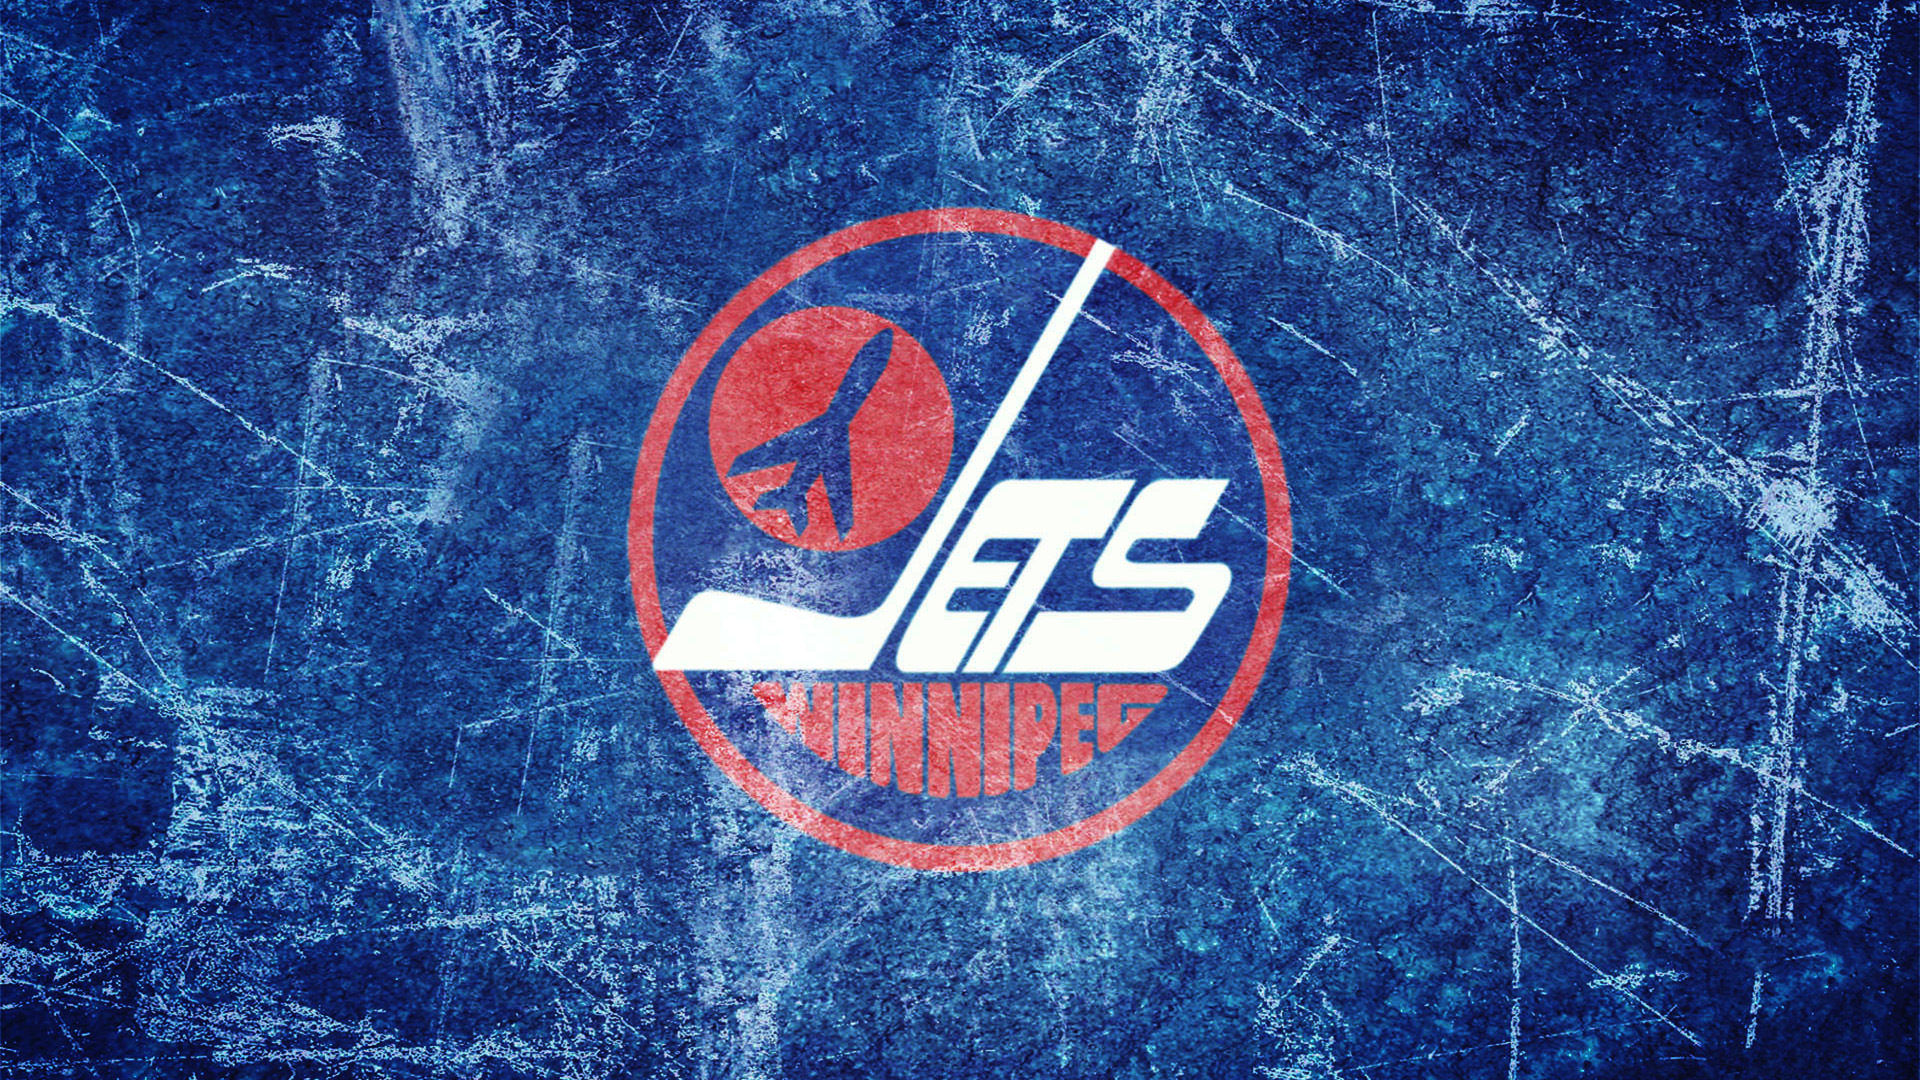 Winnipeg Jets Wallpaper 4   1920 X 1080 stmednet 1920x1080